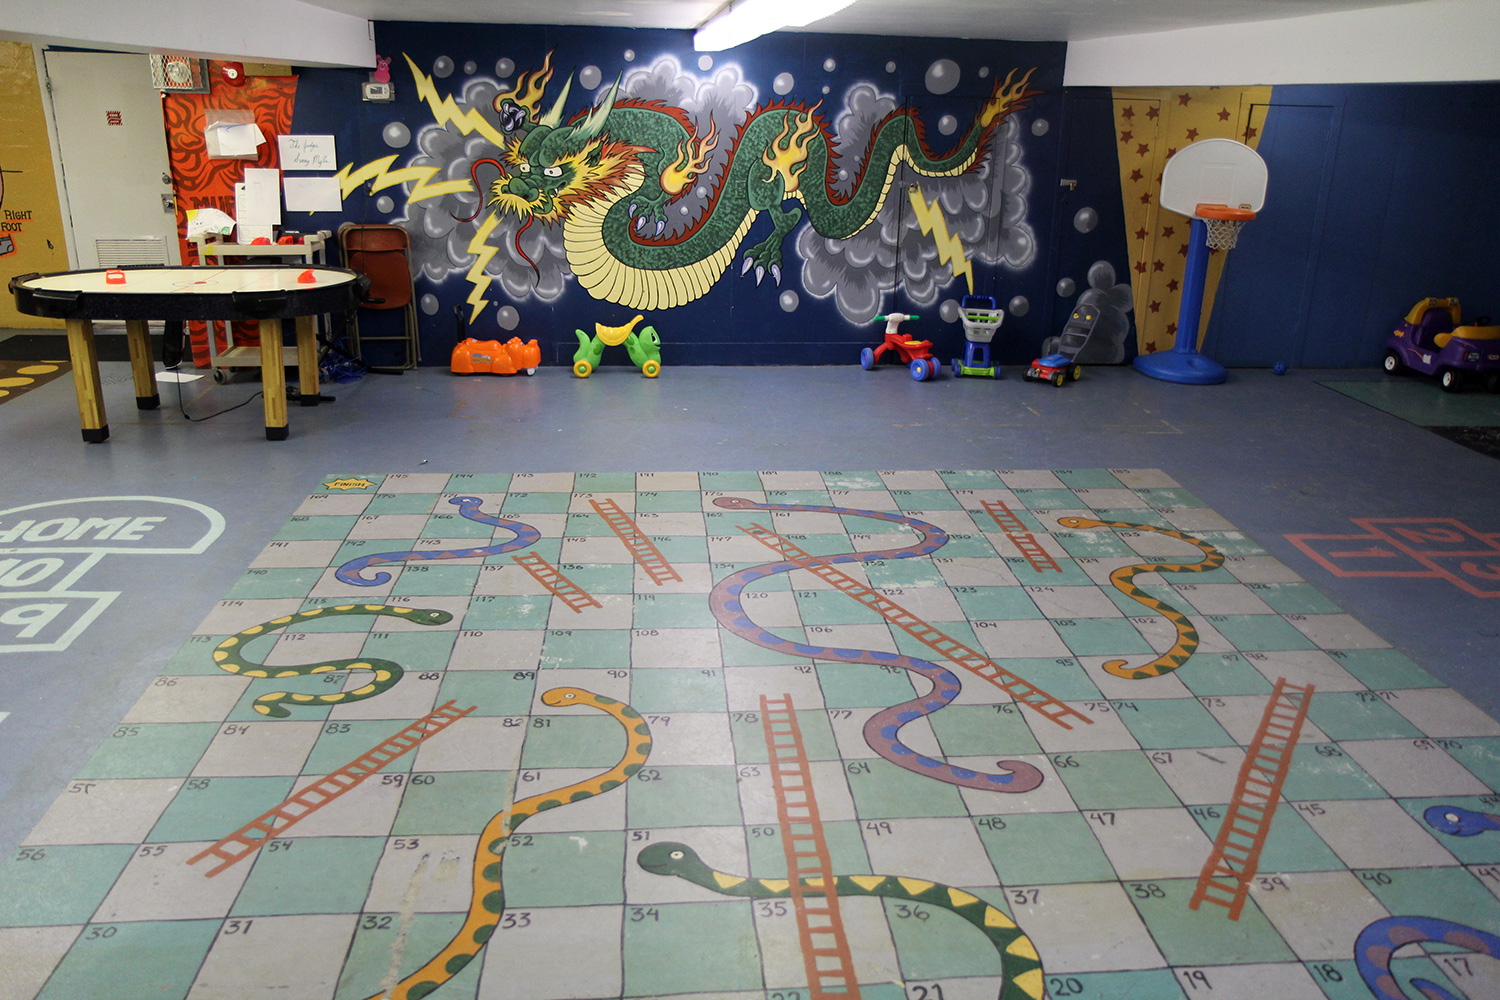 Basement Snakes and Ladders